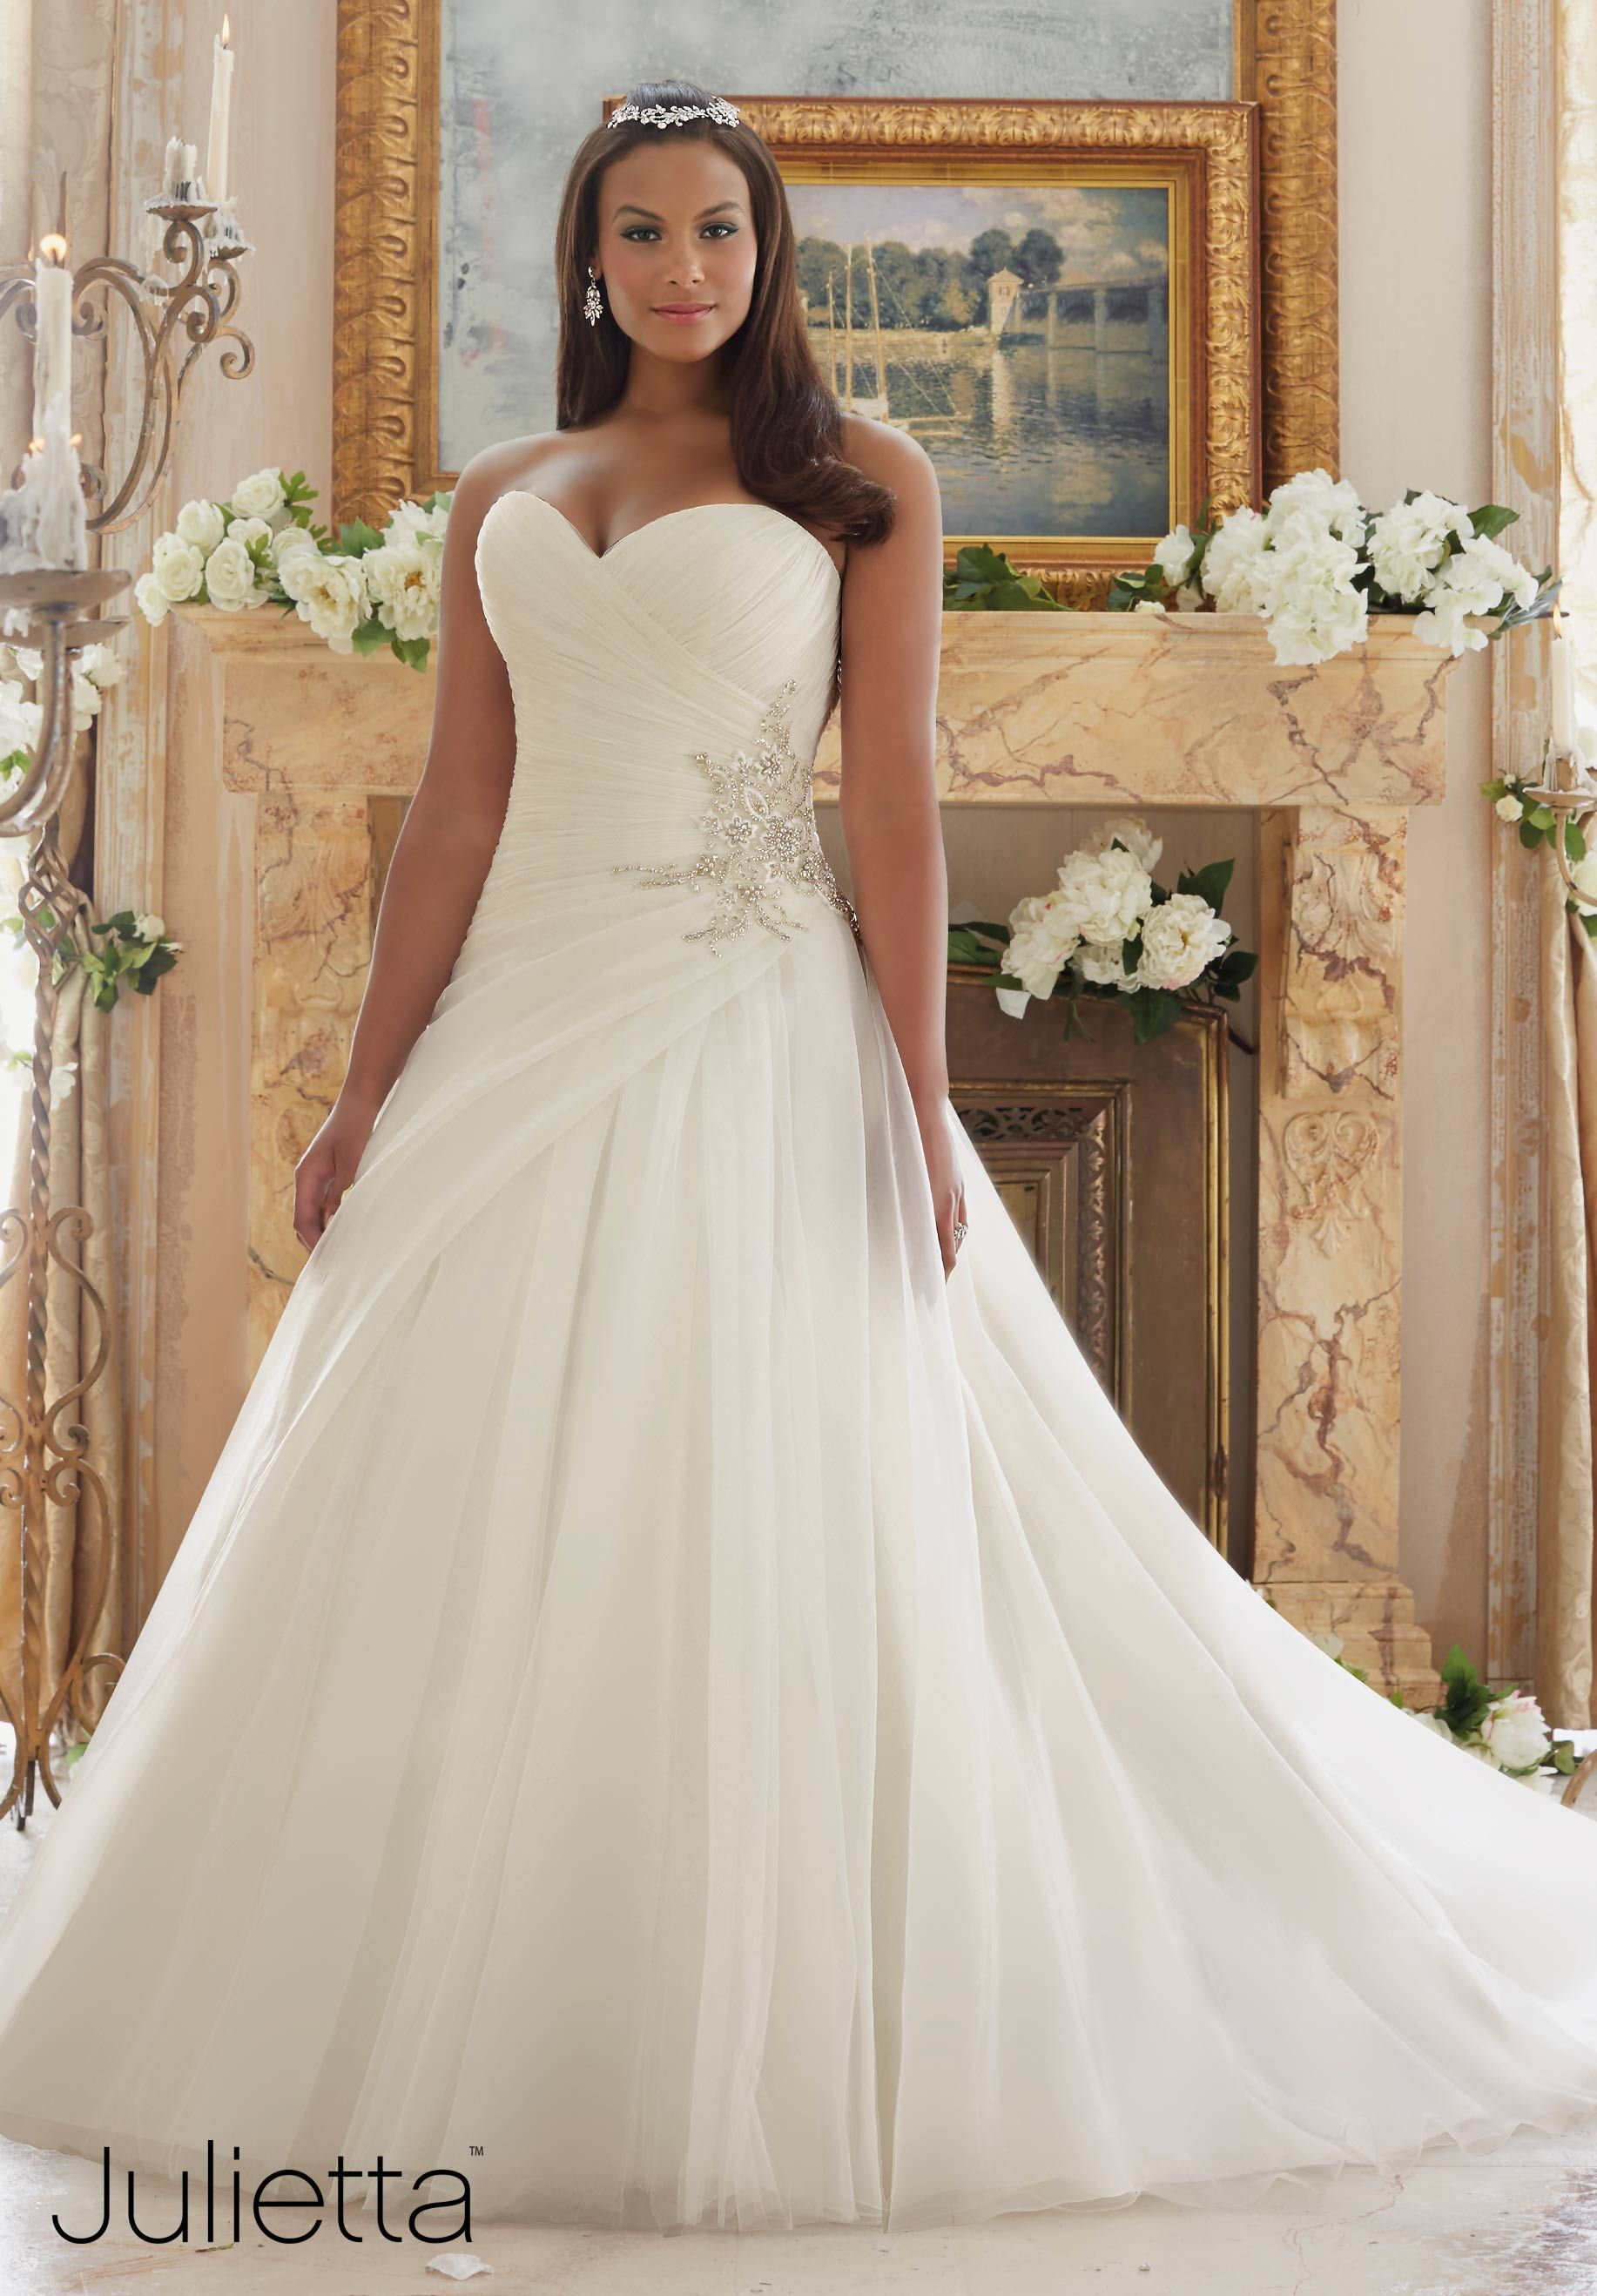 Plus size wedding gowns mori lee julietta collection for Best wedding dress styles for plus size brides